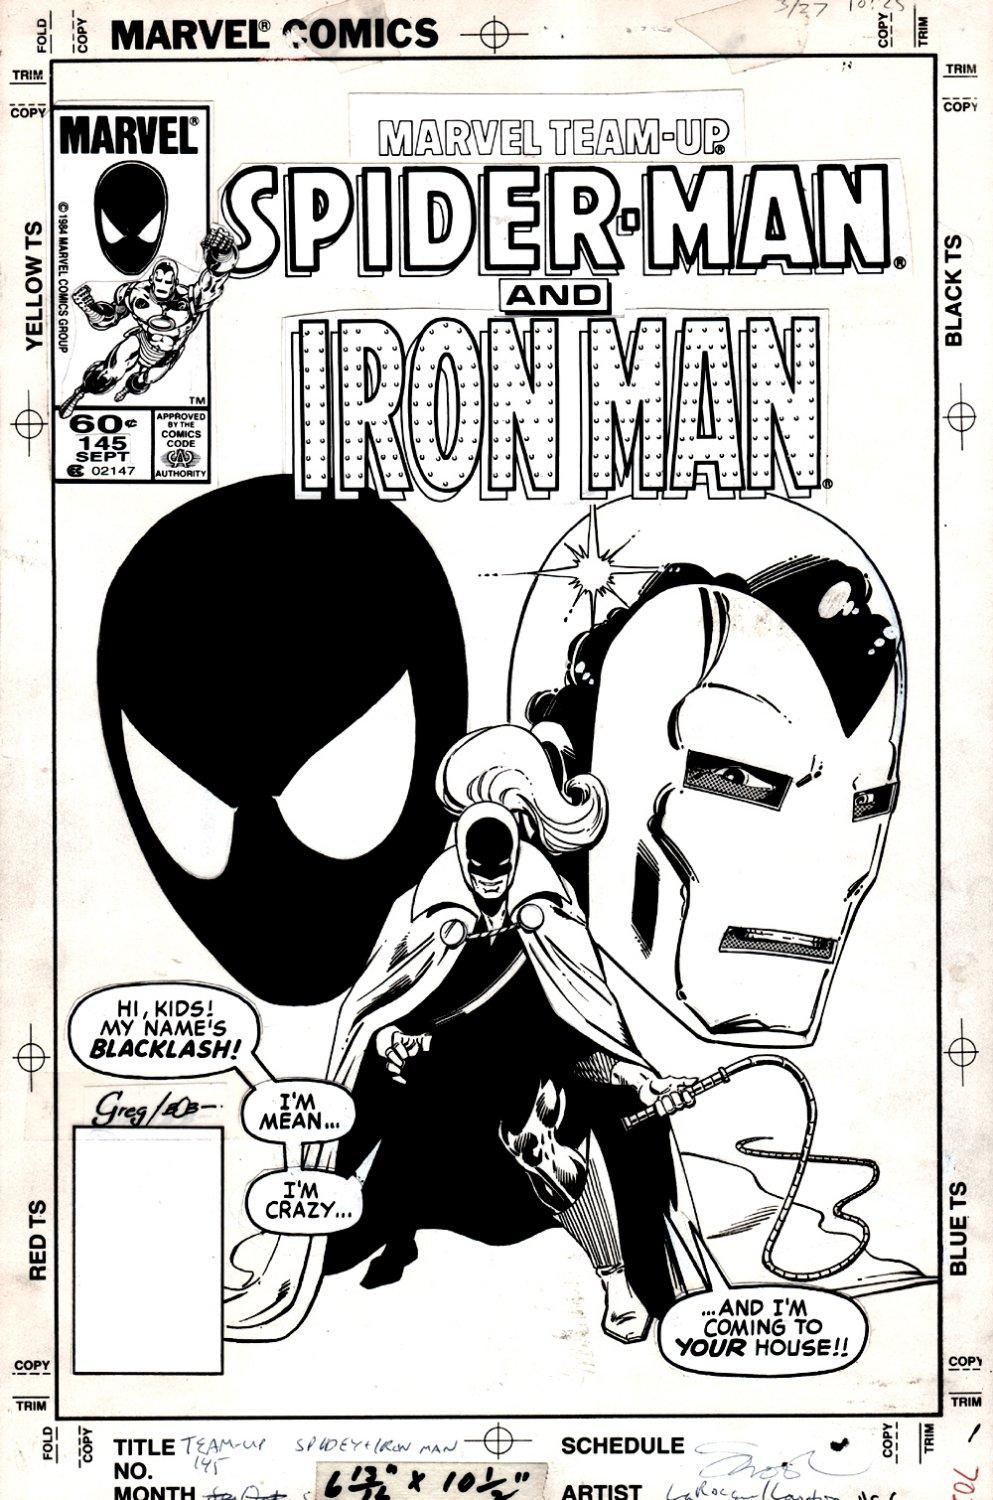 Marvel Team-Up #145 Cover (VERY EARLY BLACK COSTUME SPIDER-MAN!) 1984